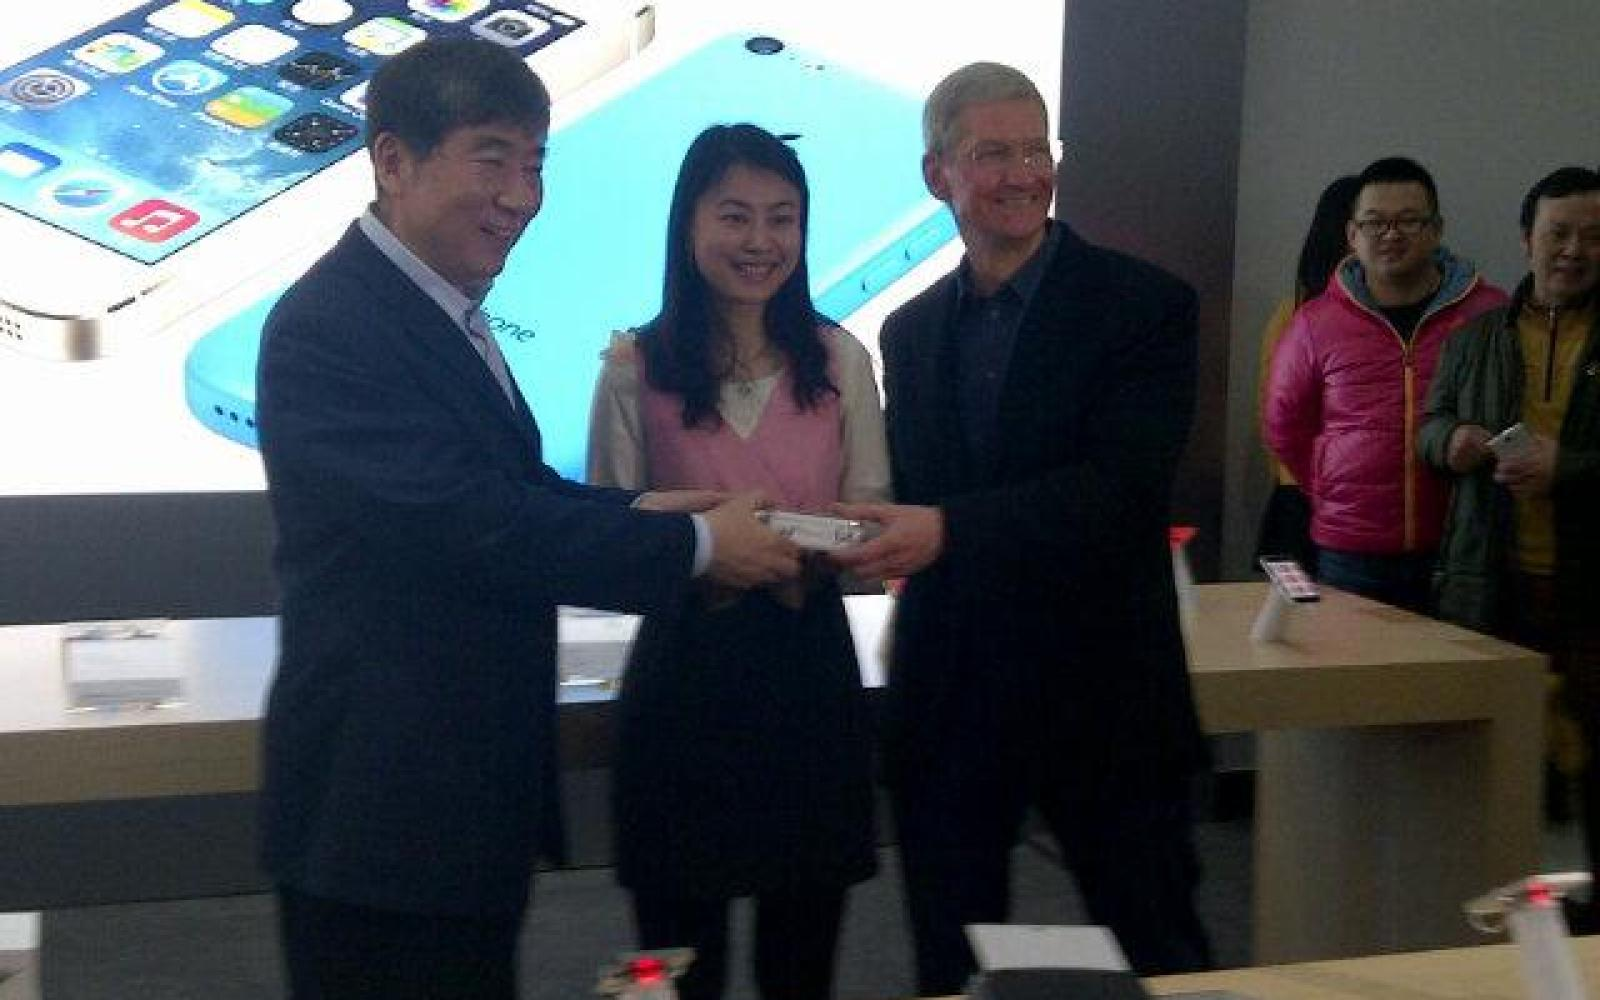 Apple CEO Cook hands out autographed iPhones at China Mobile launch, says 'great things' coming